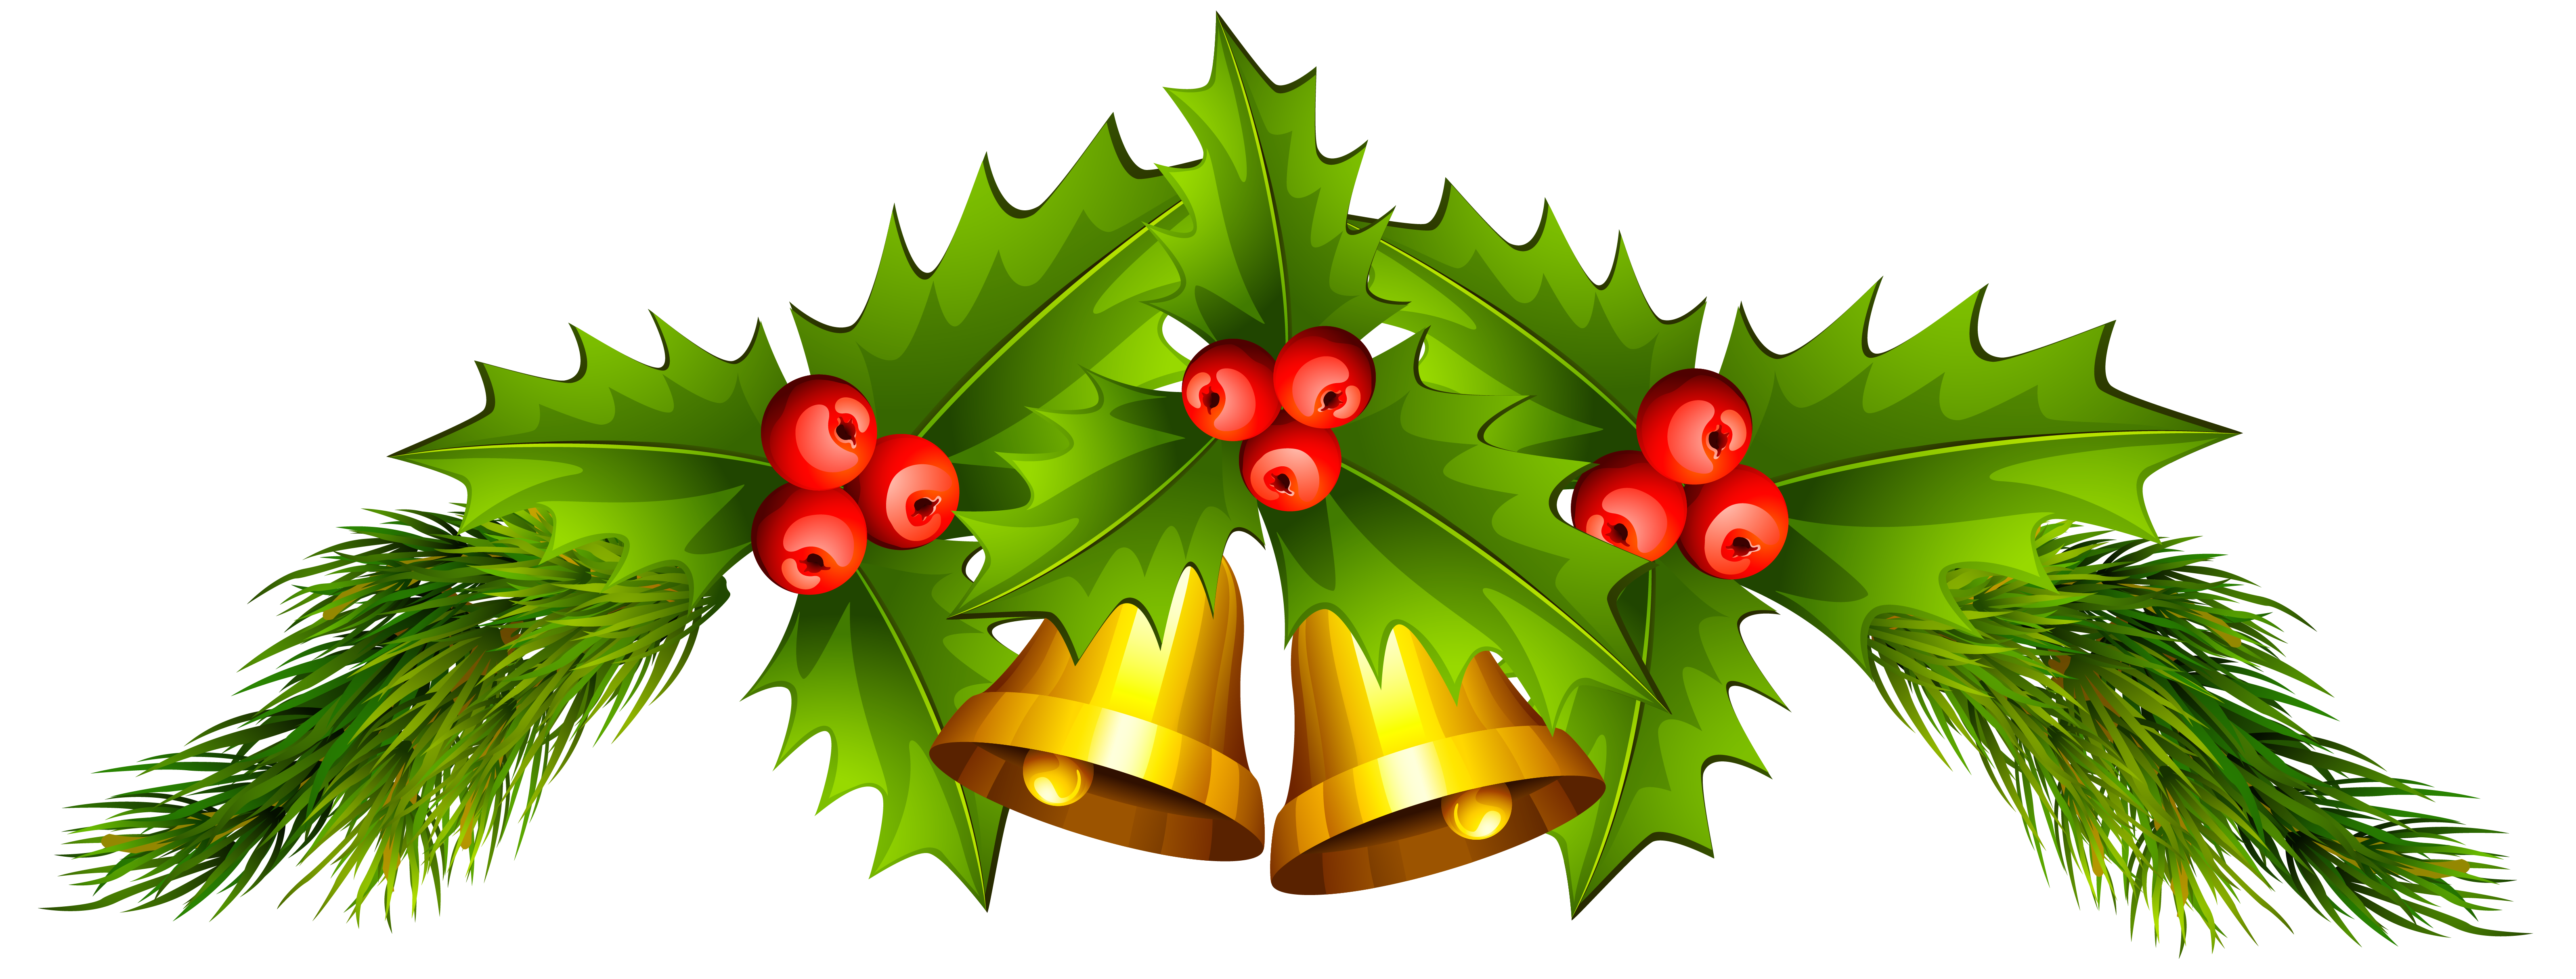 Images Of Christmas Bells - ClipArt Best